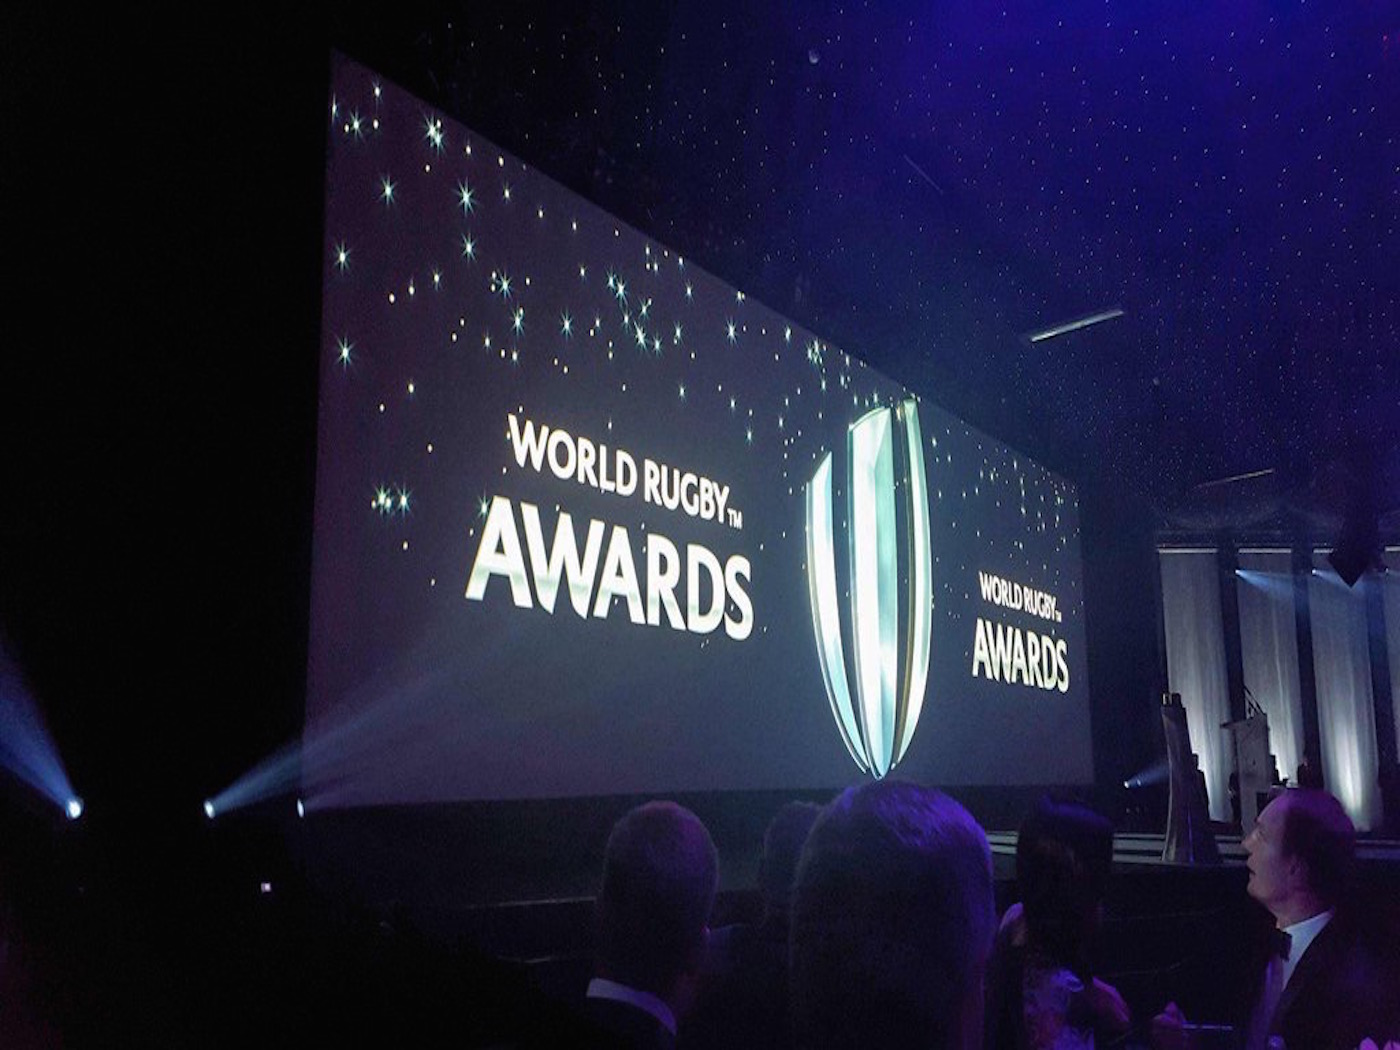 015 world rugby awards set